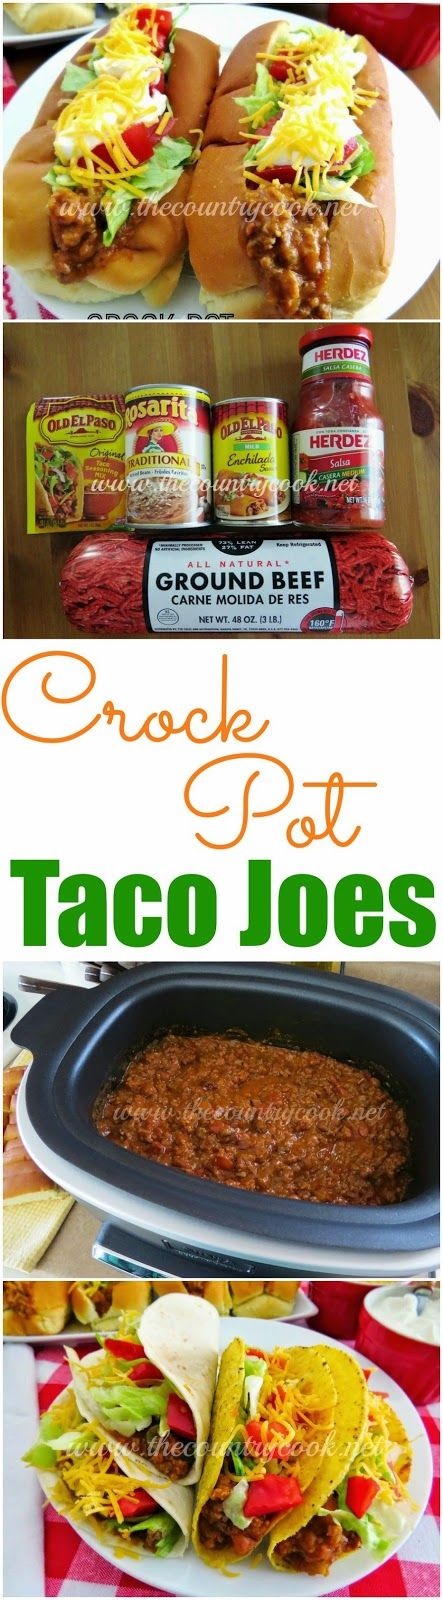 Crock Pot Taco Joes from The Country Cook. Like a sloppy joe but with a taco-flavored flair. Ground beef, salsa, and enchilada sauce combine to make the most AMAZING filling. Works good for tacos and burritos or taco salad too!